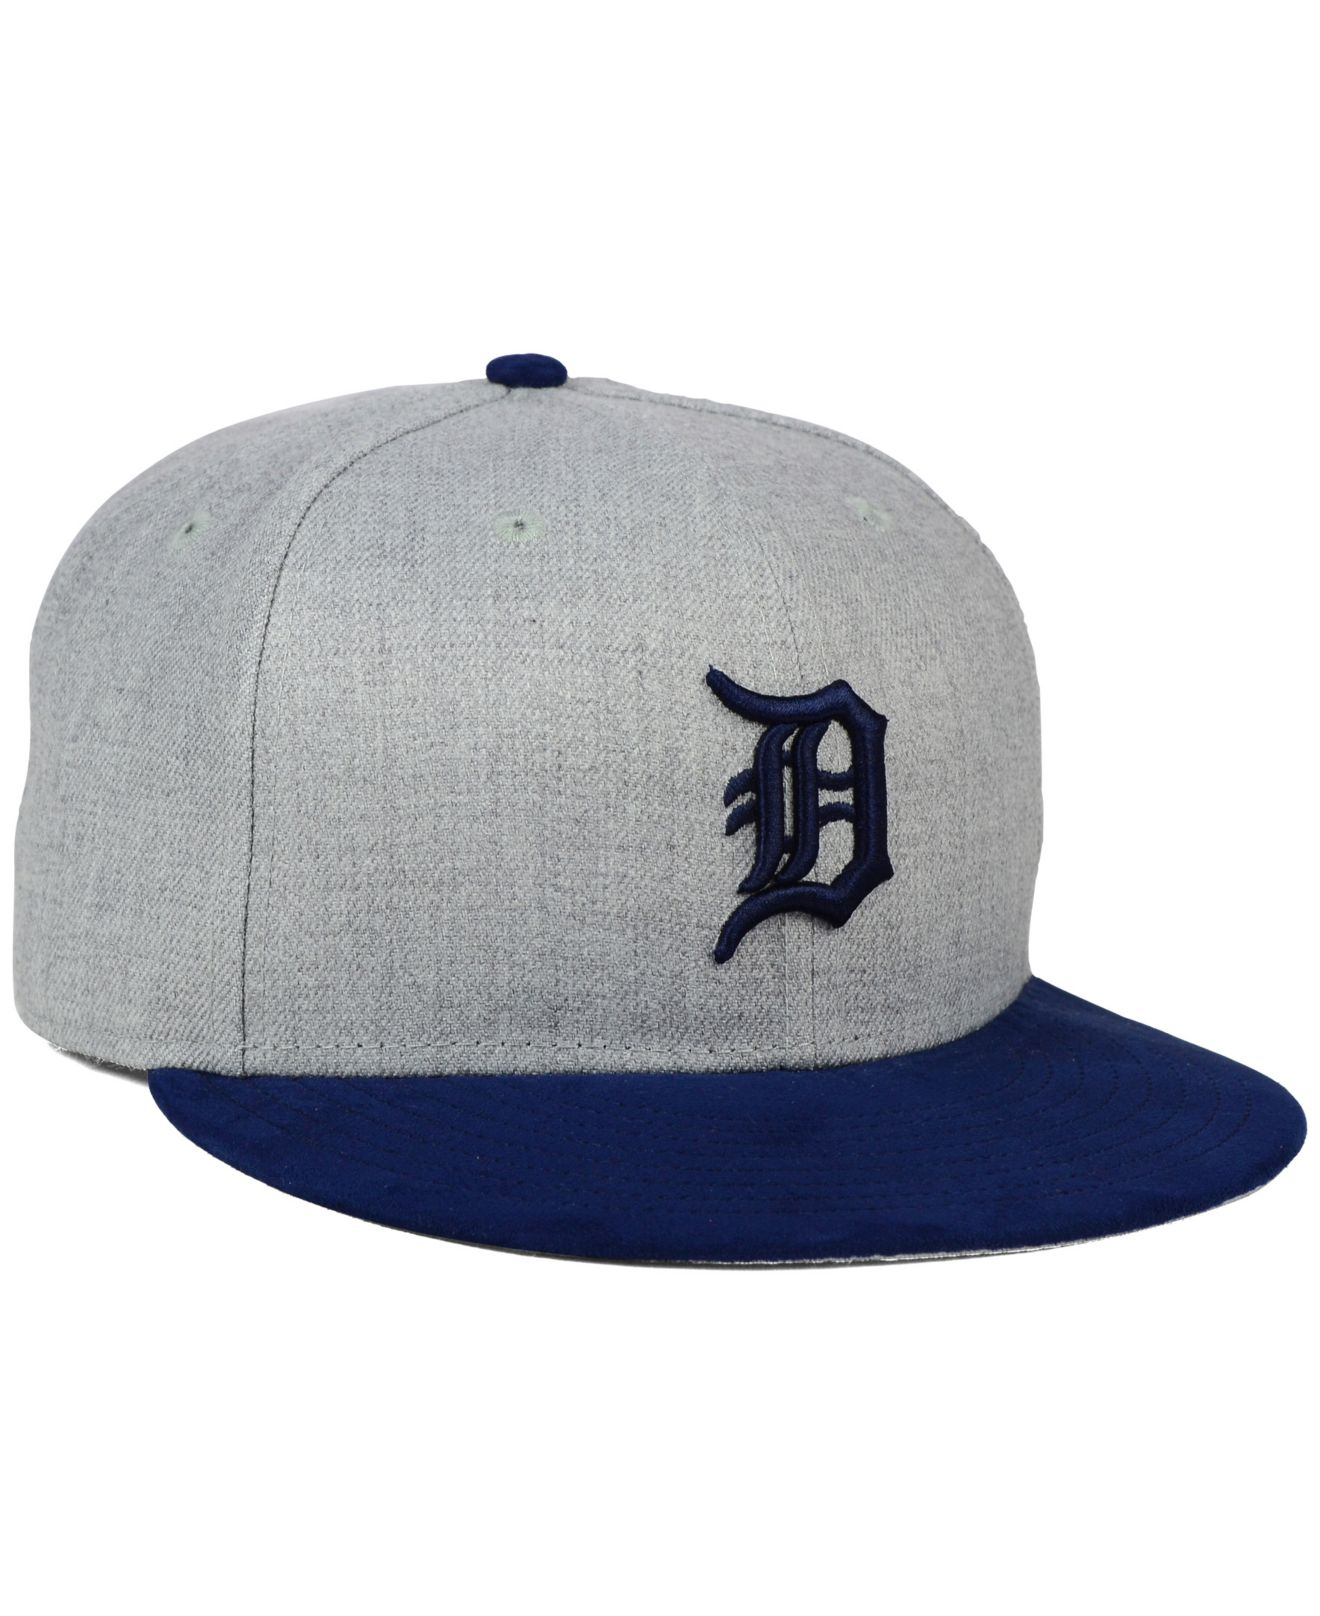 6ef09eb31779a1 ... official australia lyst ktz detroit tigers heather on faux suede 9fifty  snapback cap 57400 1e45f switzerland